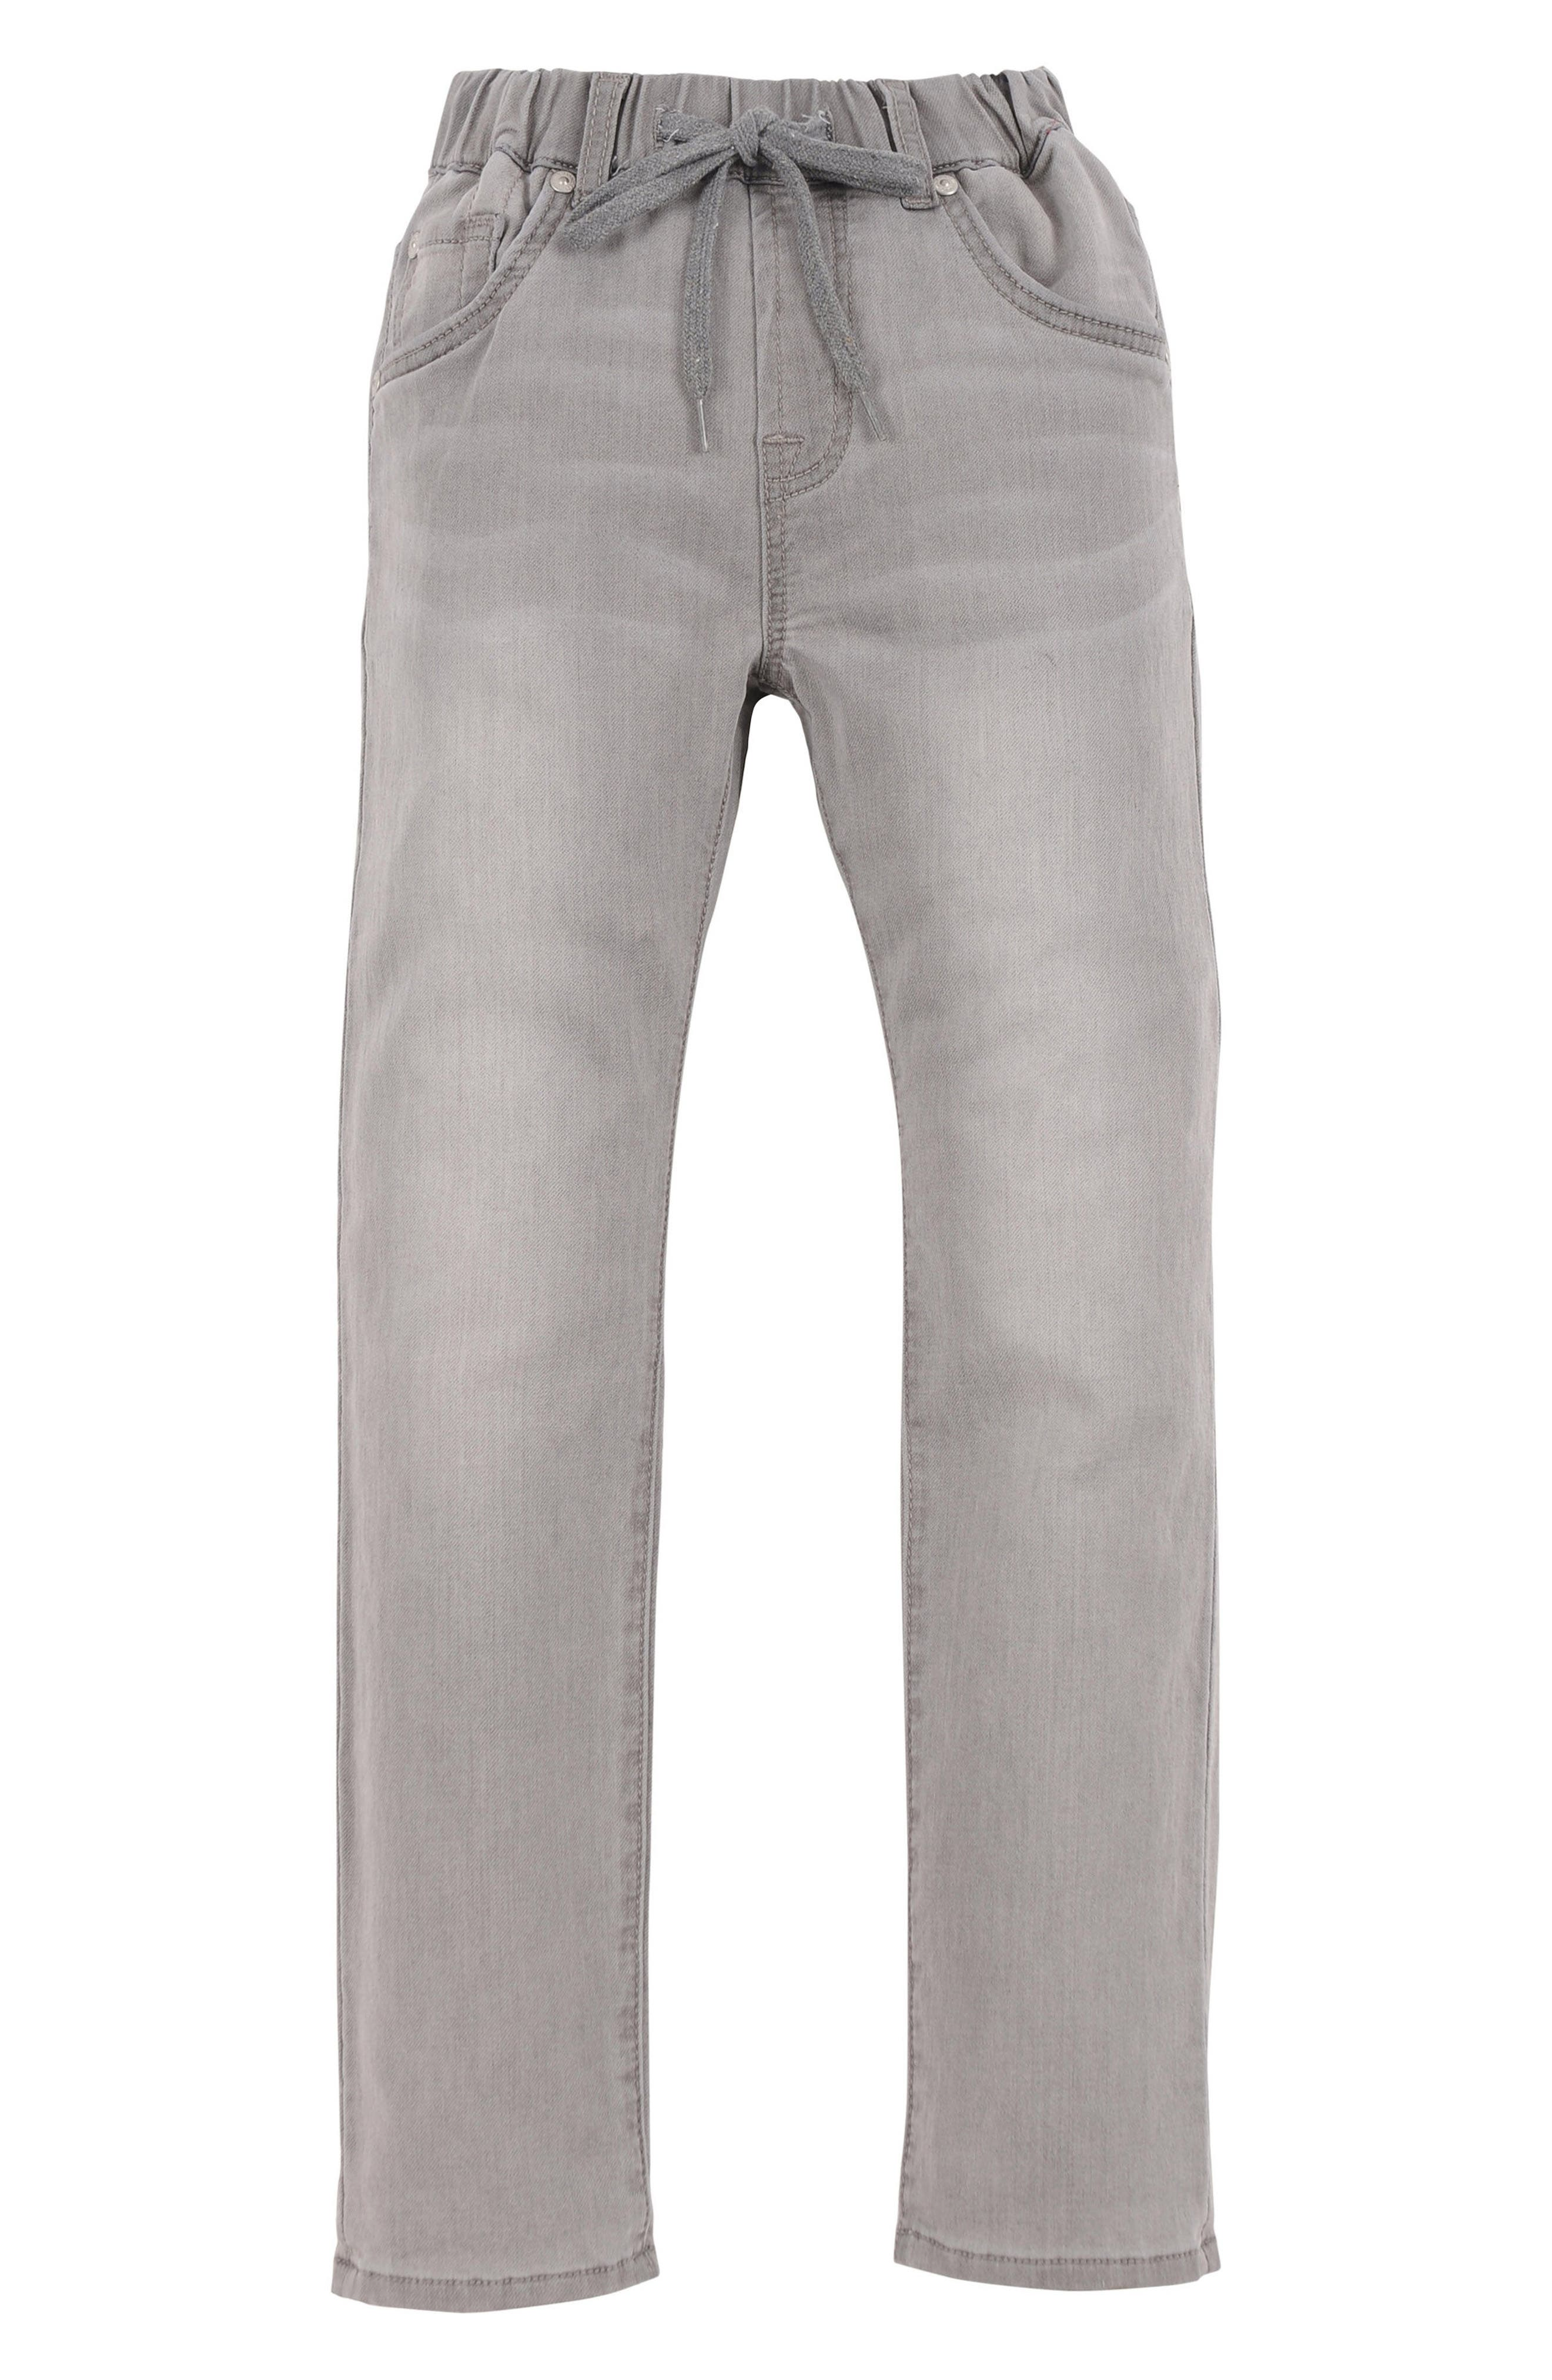 Main Image - 7 For All Mankind® Jogger Pants (Toddler Boys)